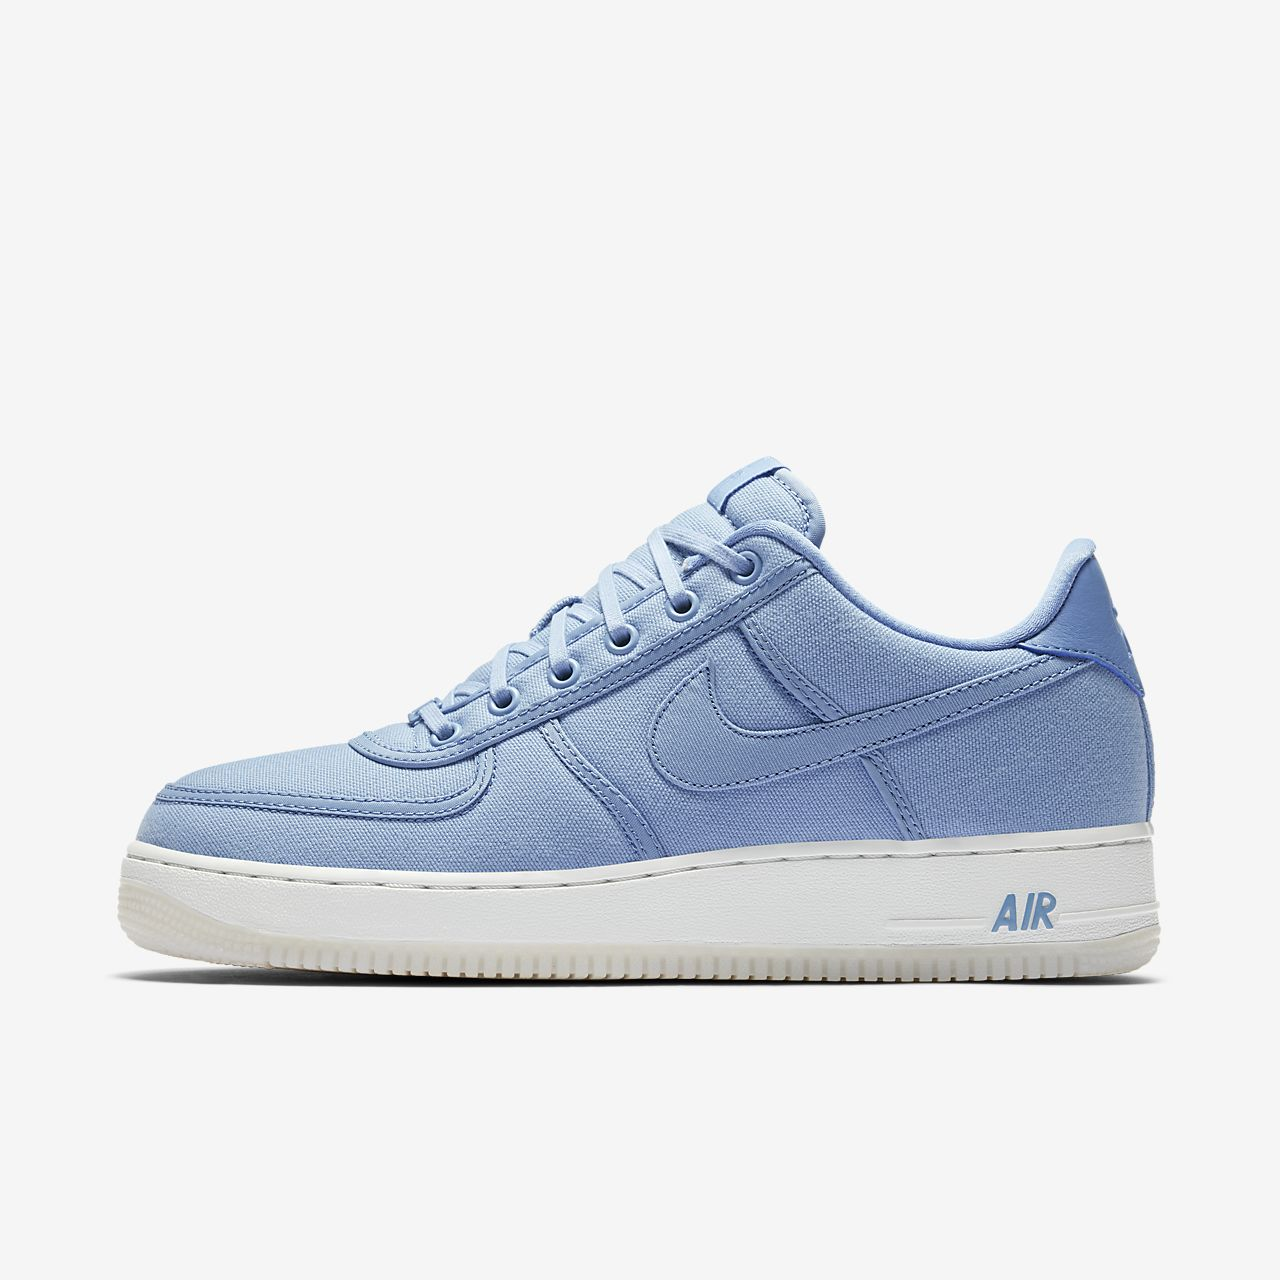 Chaussure Nike Air Force 1 Low Retro QS pour Homme